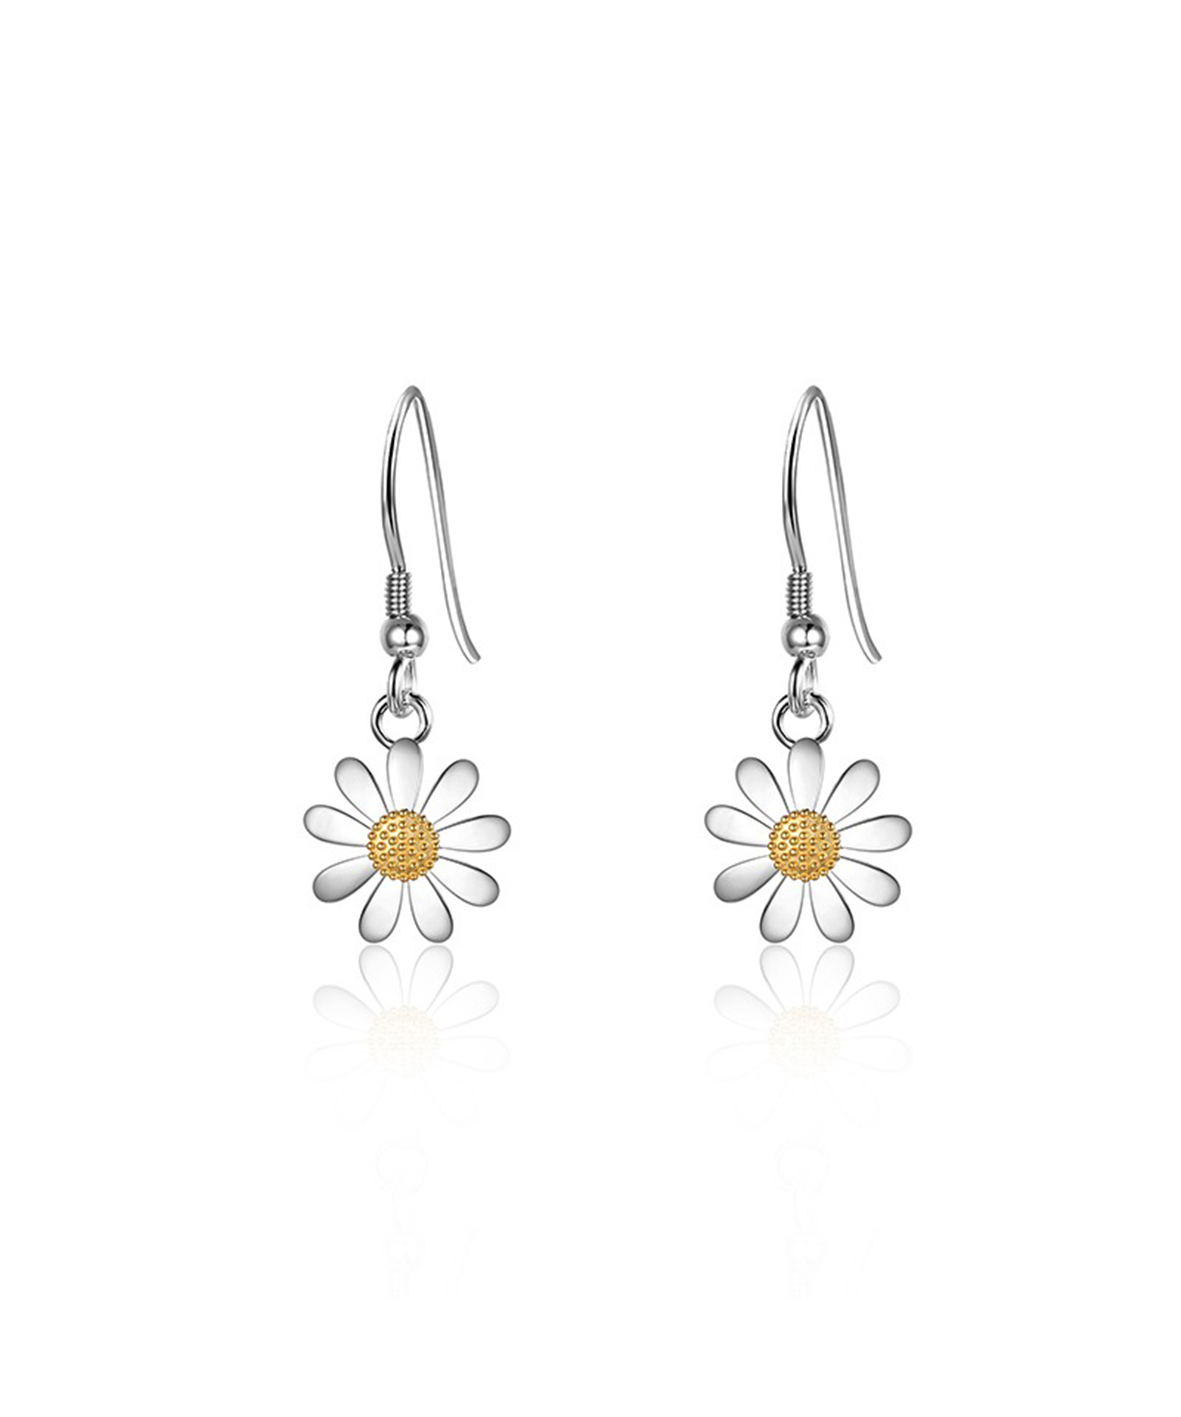 10mm Daisy Drop Earrings